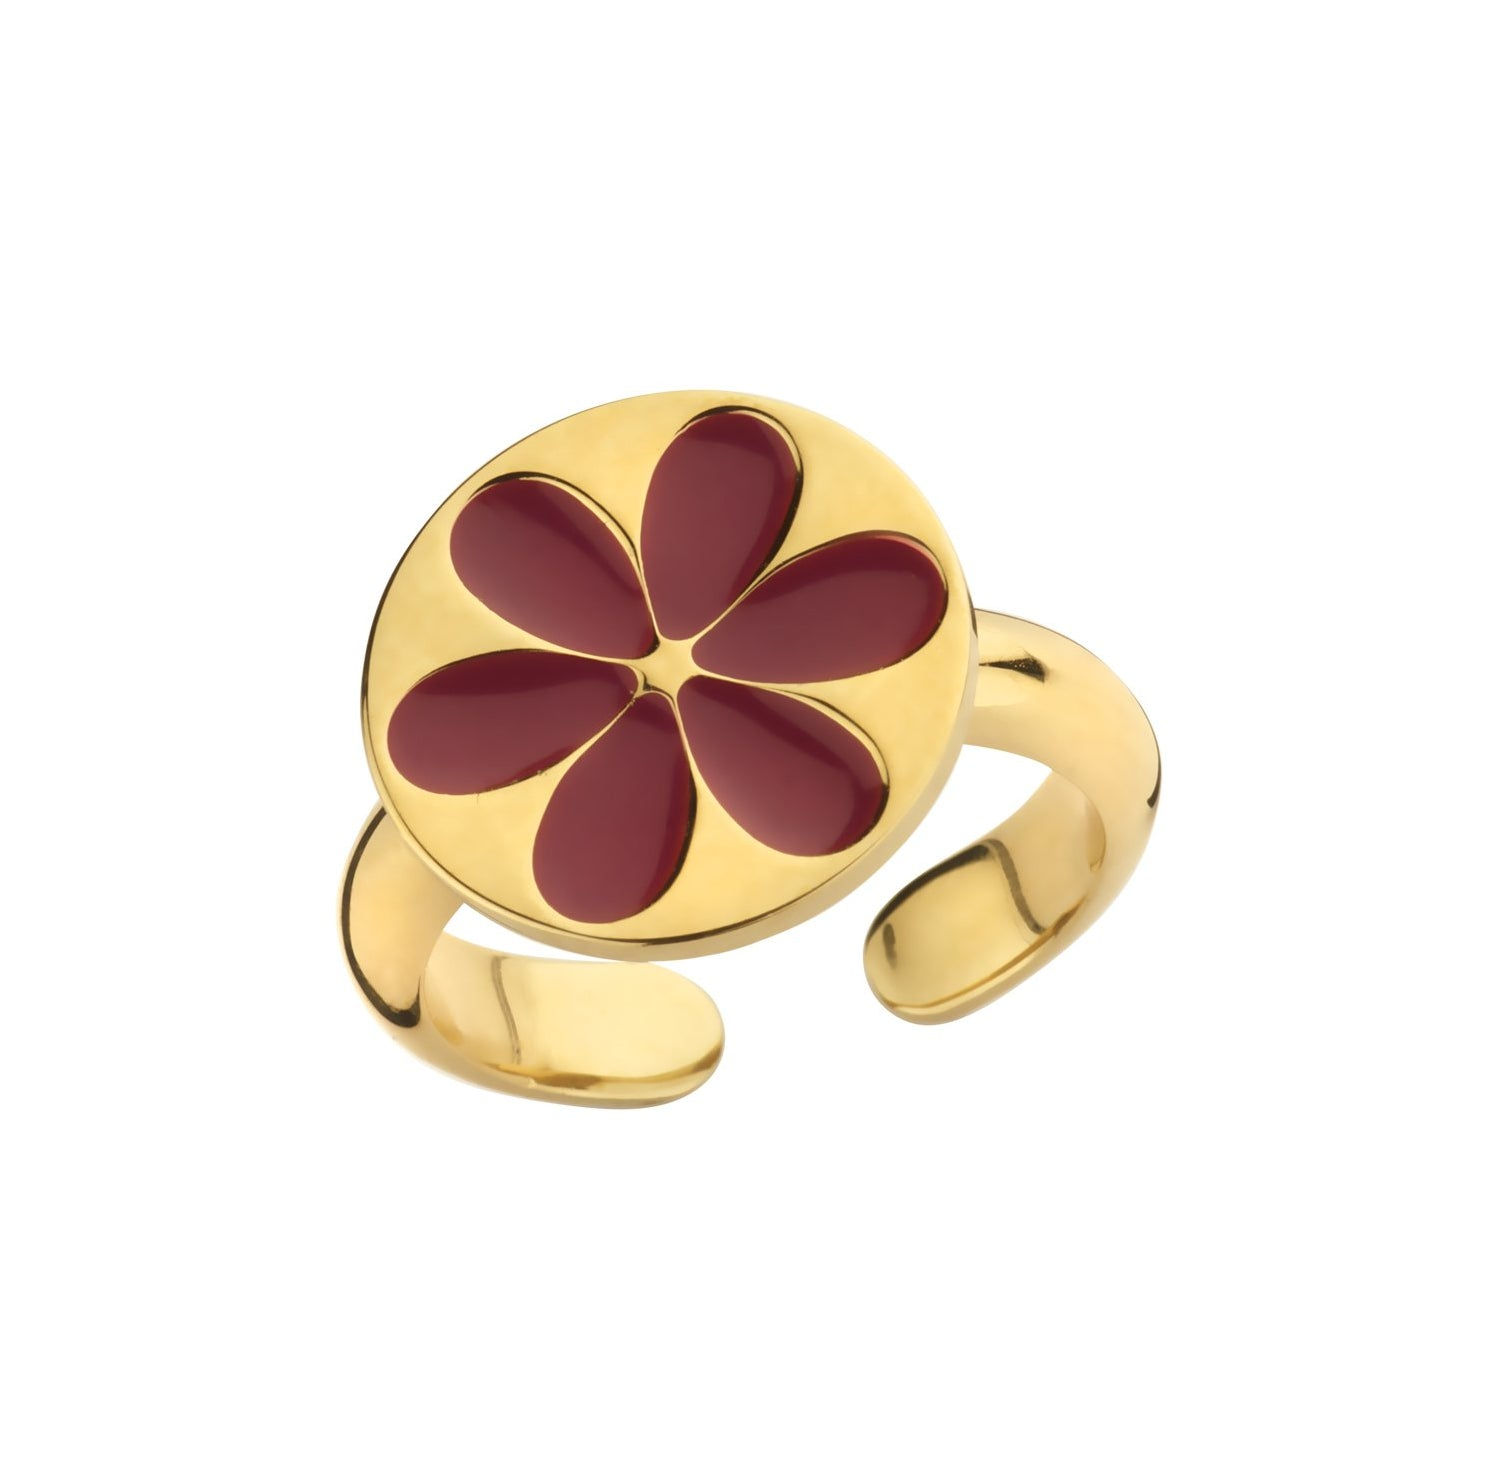 Ring Enamel Cherry